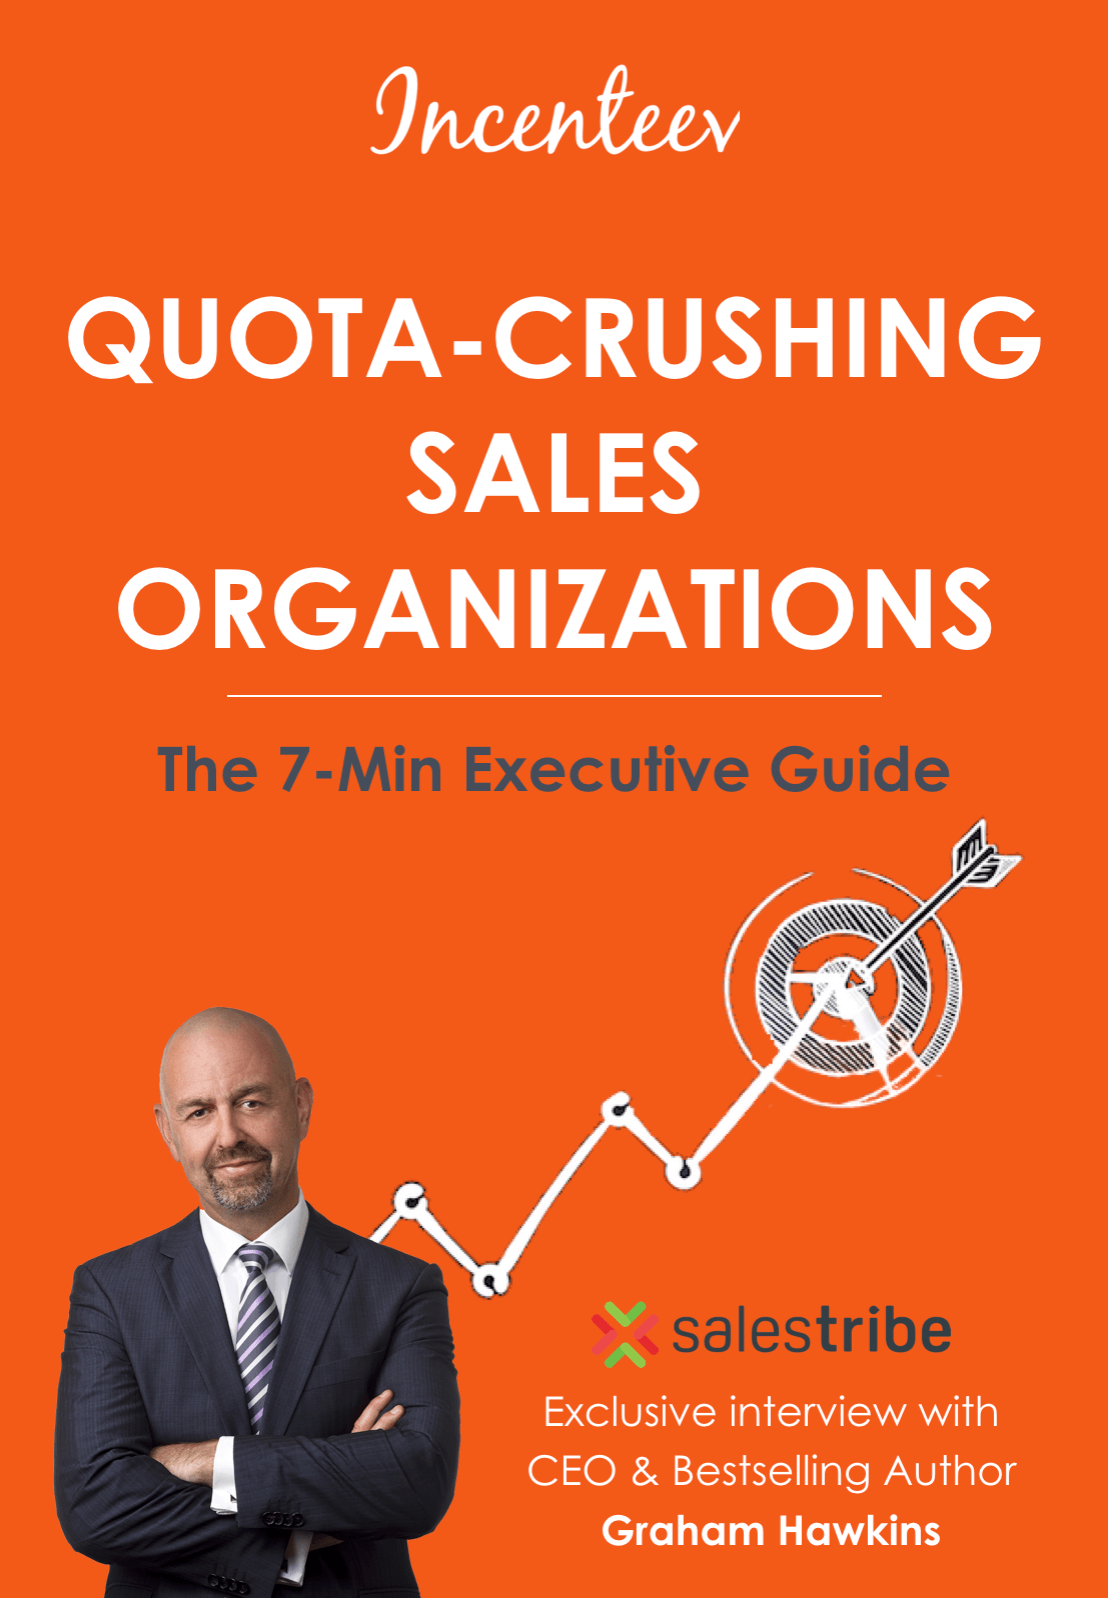 Cover - Quota Crushing Sales Organizations [The 7-Min Executive Guide] (1).png